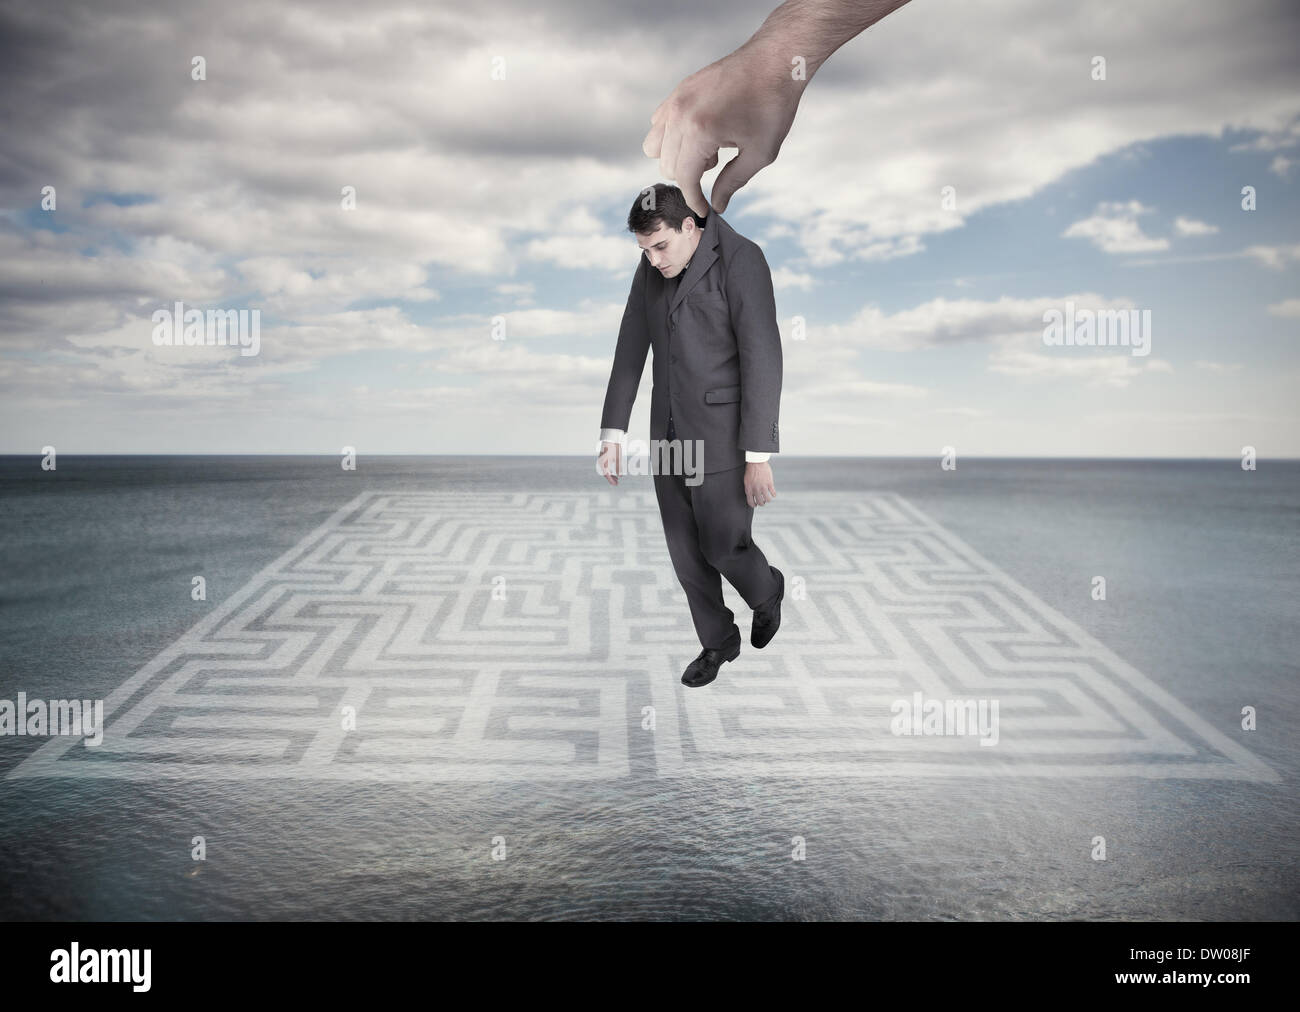 Big hand dropping off a businessman - Stock Image